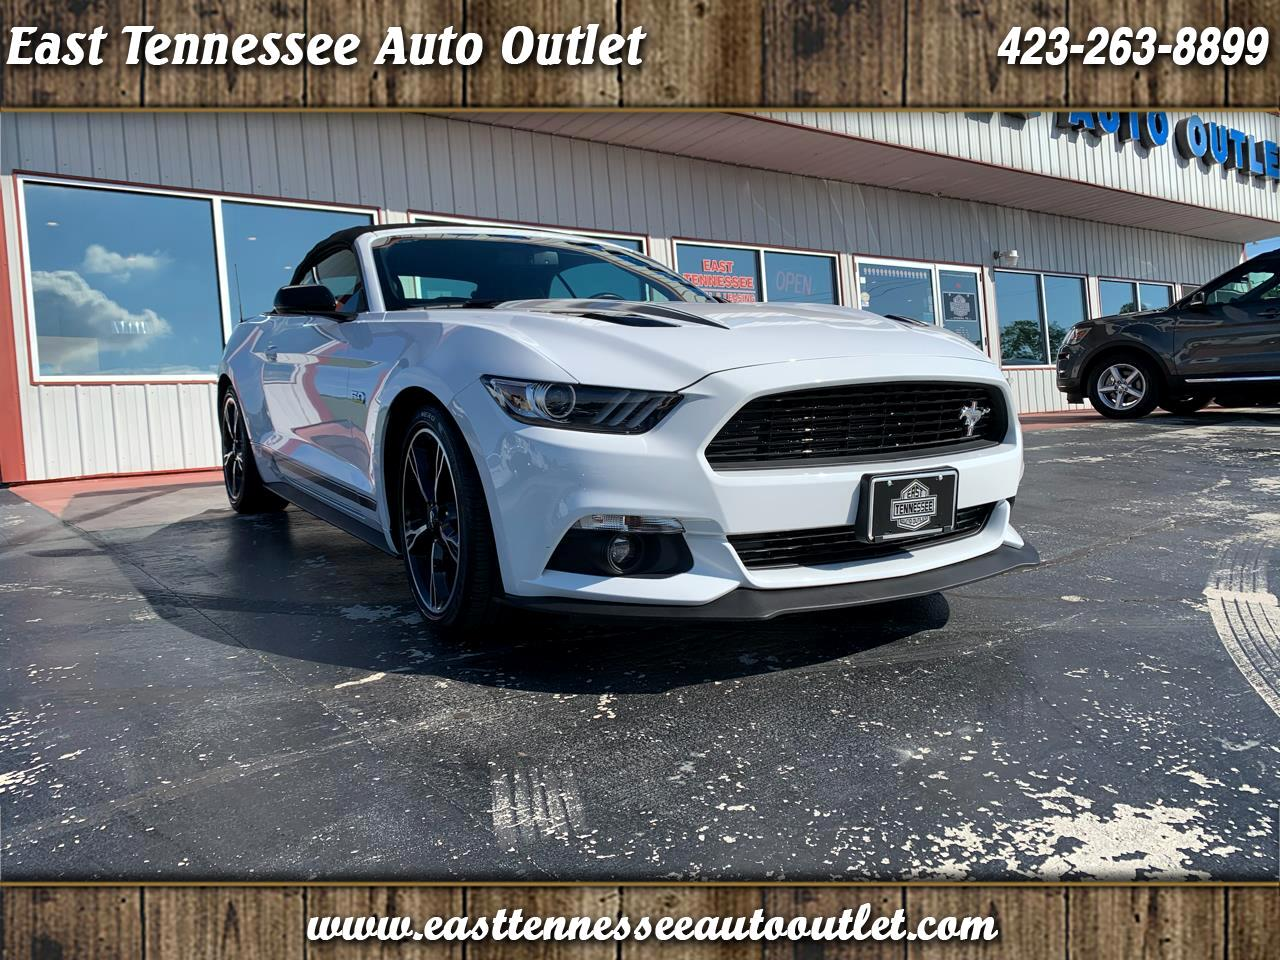 Ford Mustang 2dr Conv GT Premium 2016